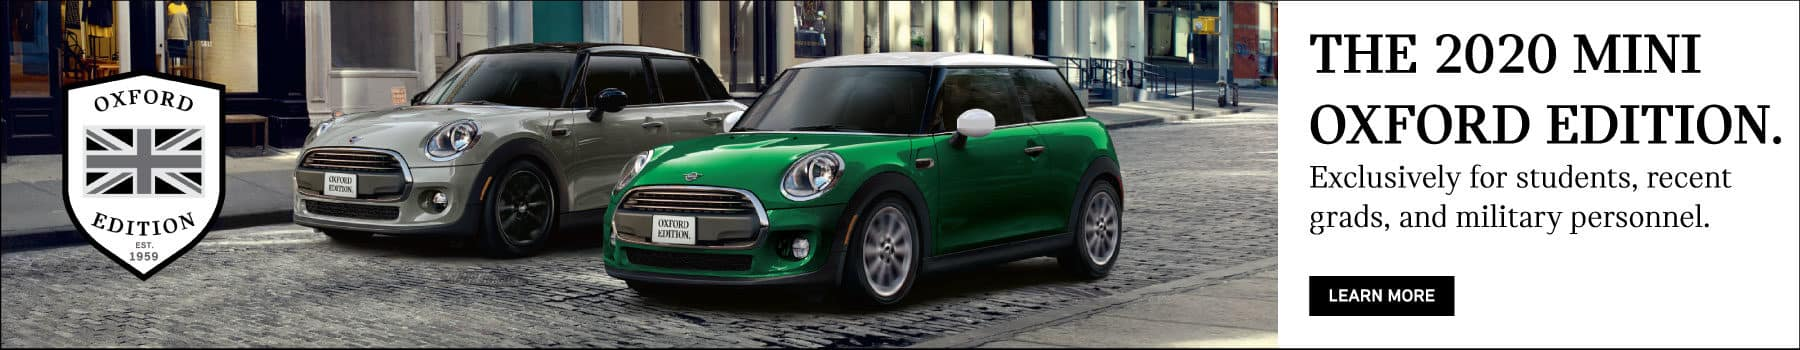 The 2020 MINI Oxford Edition. Exclusively for students, recent grads, and military personnel. Learn More